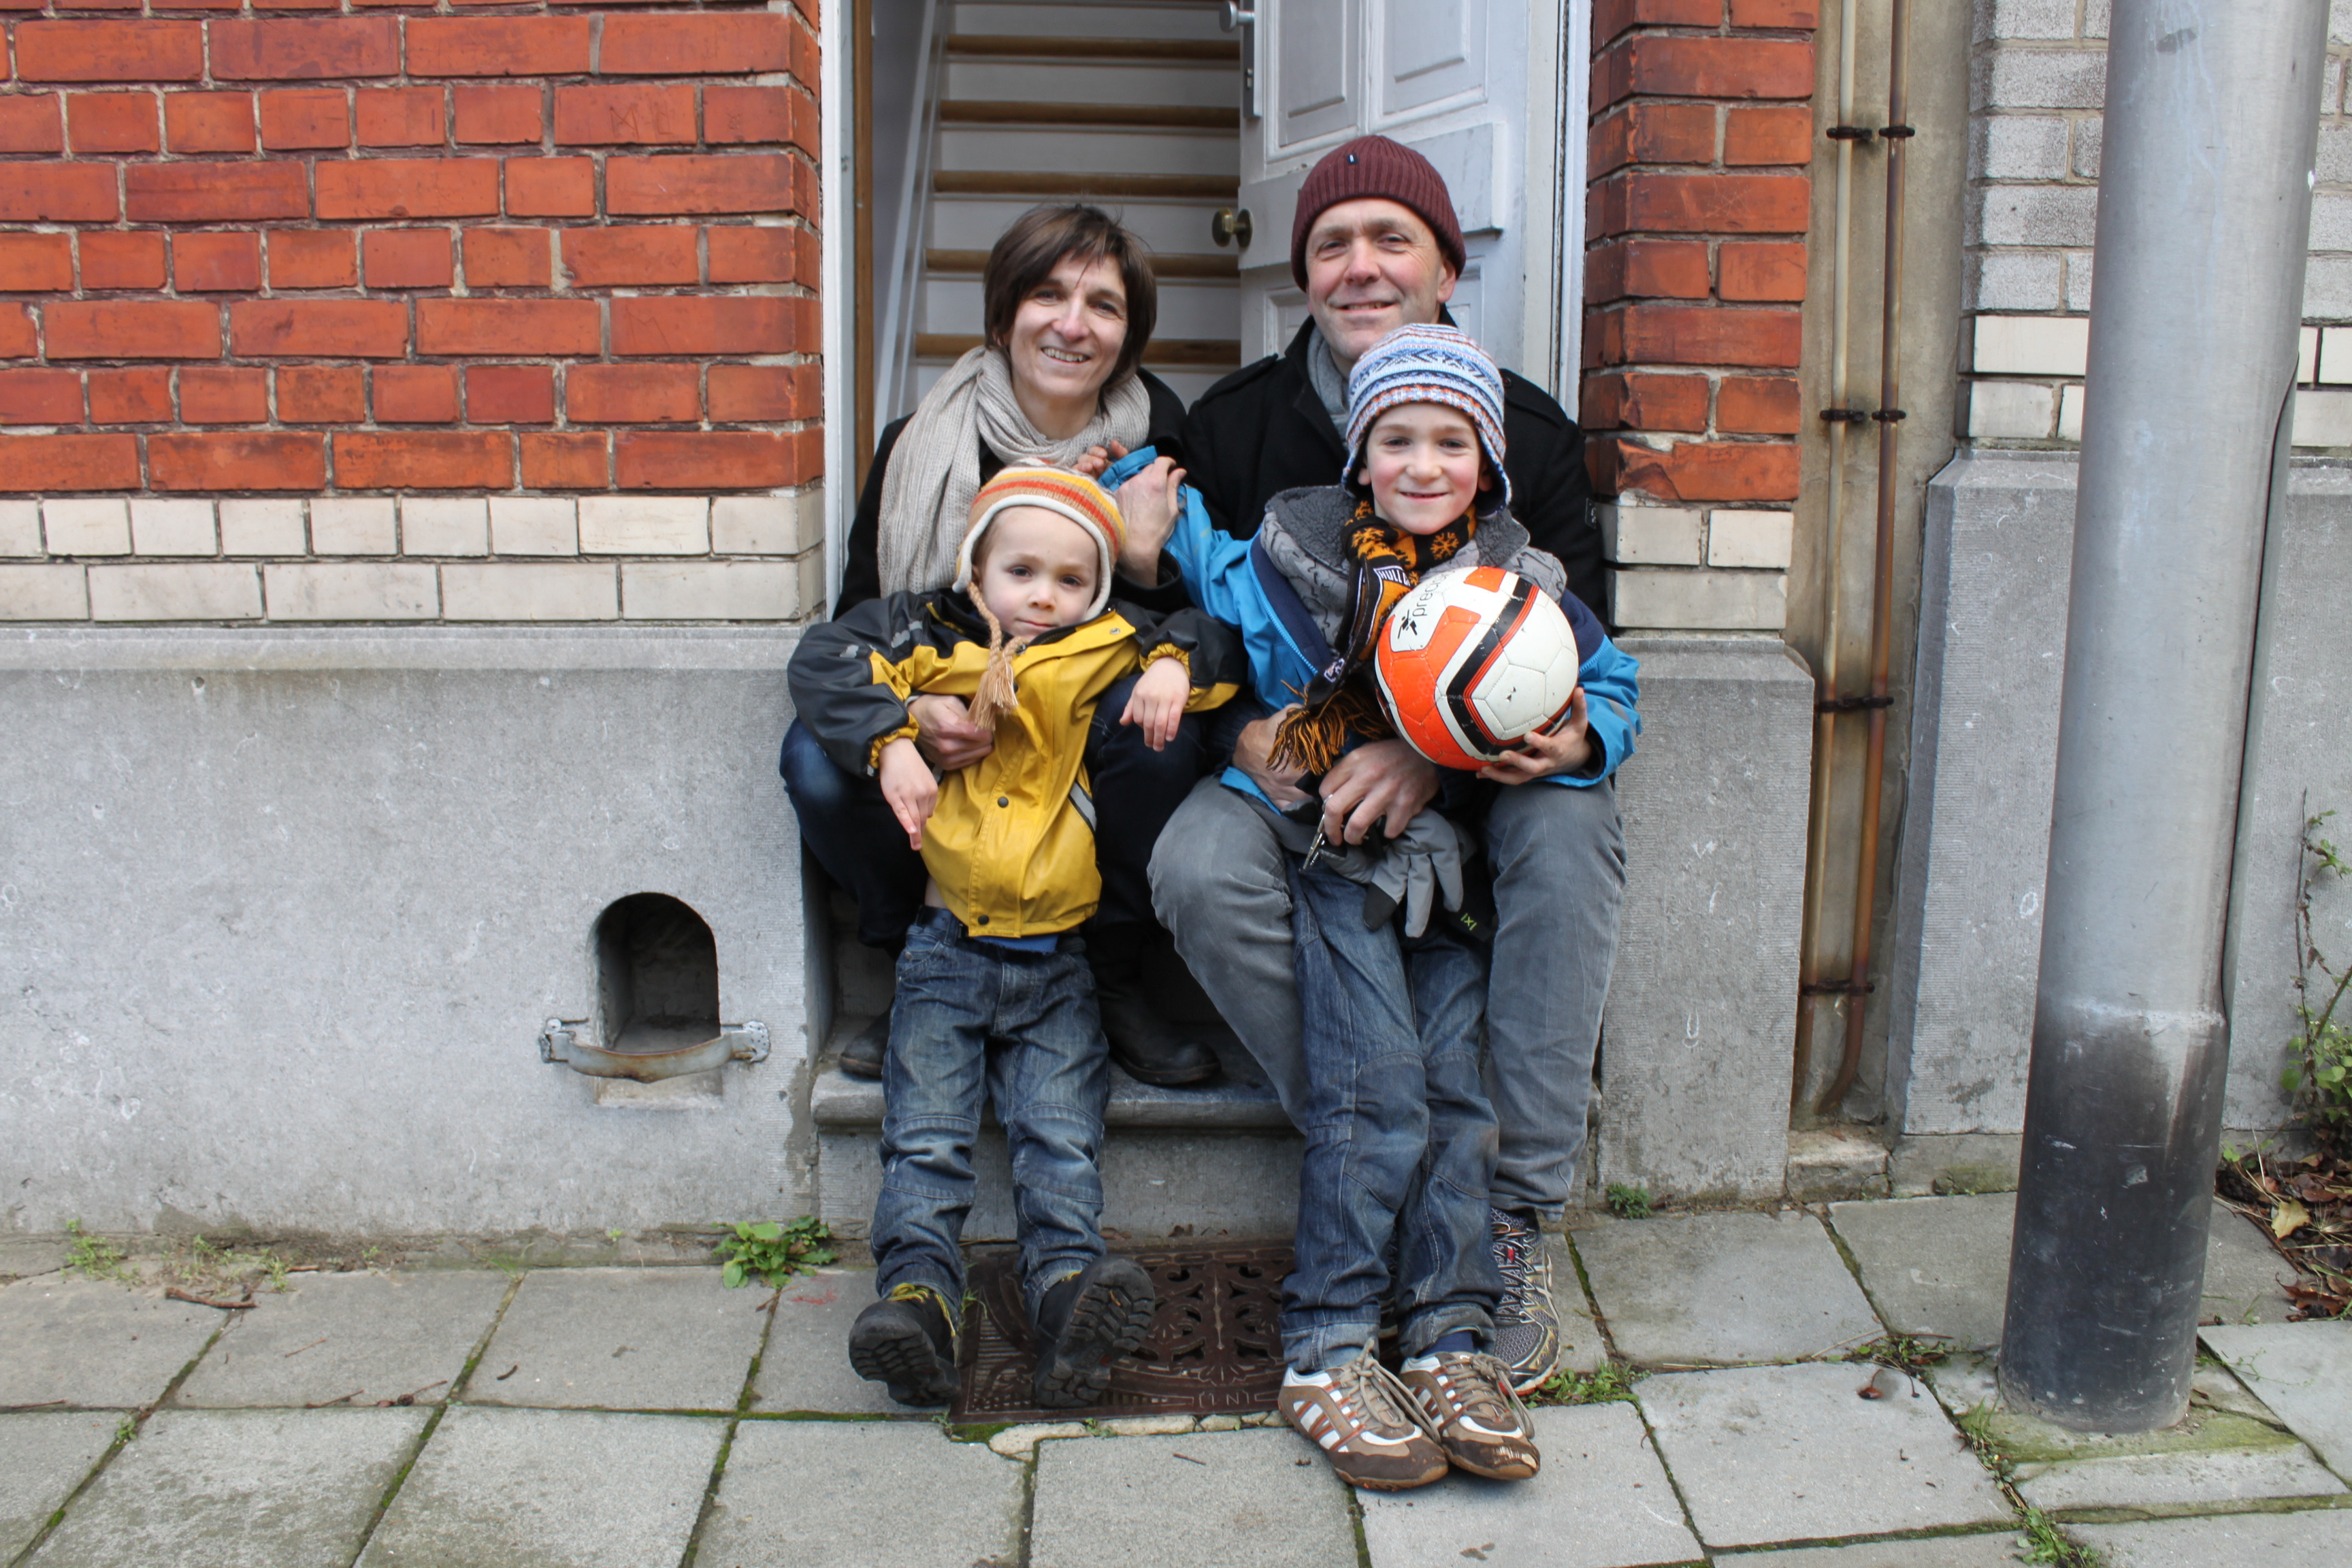 One family's decision to take in refugees: 'We're all in the same boat'